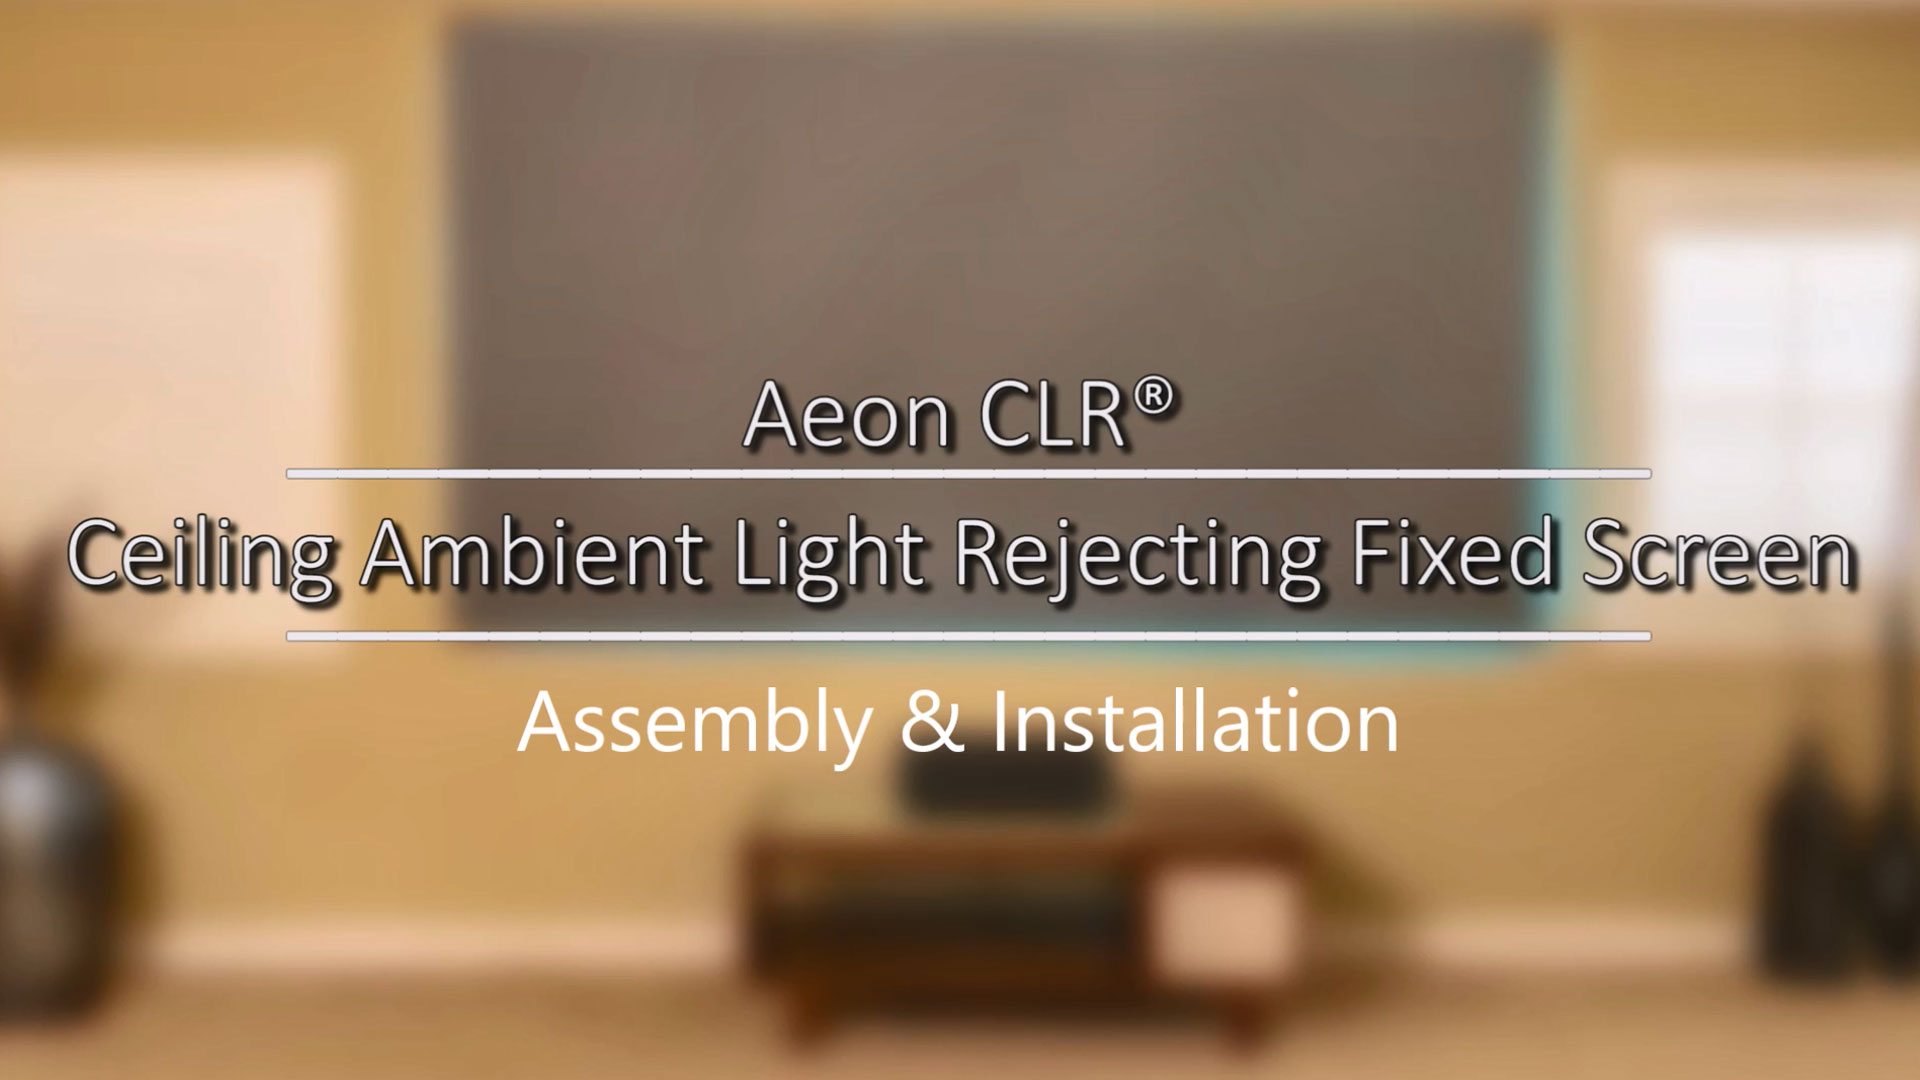 Aeon CLR® Series - CLR Fixed Frame Screen | Assembly & Installation | M Type Version